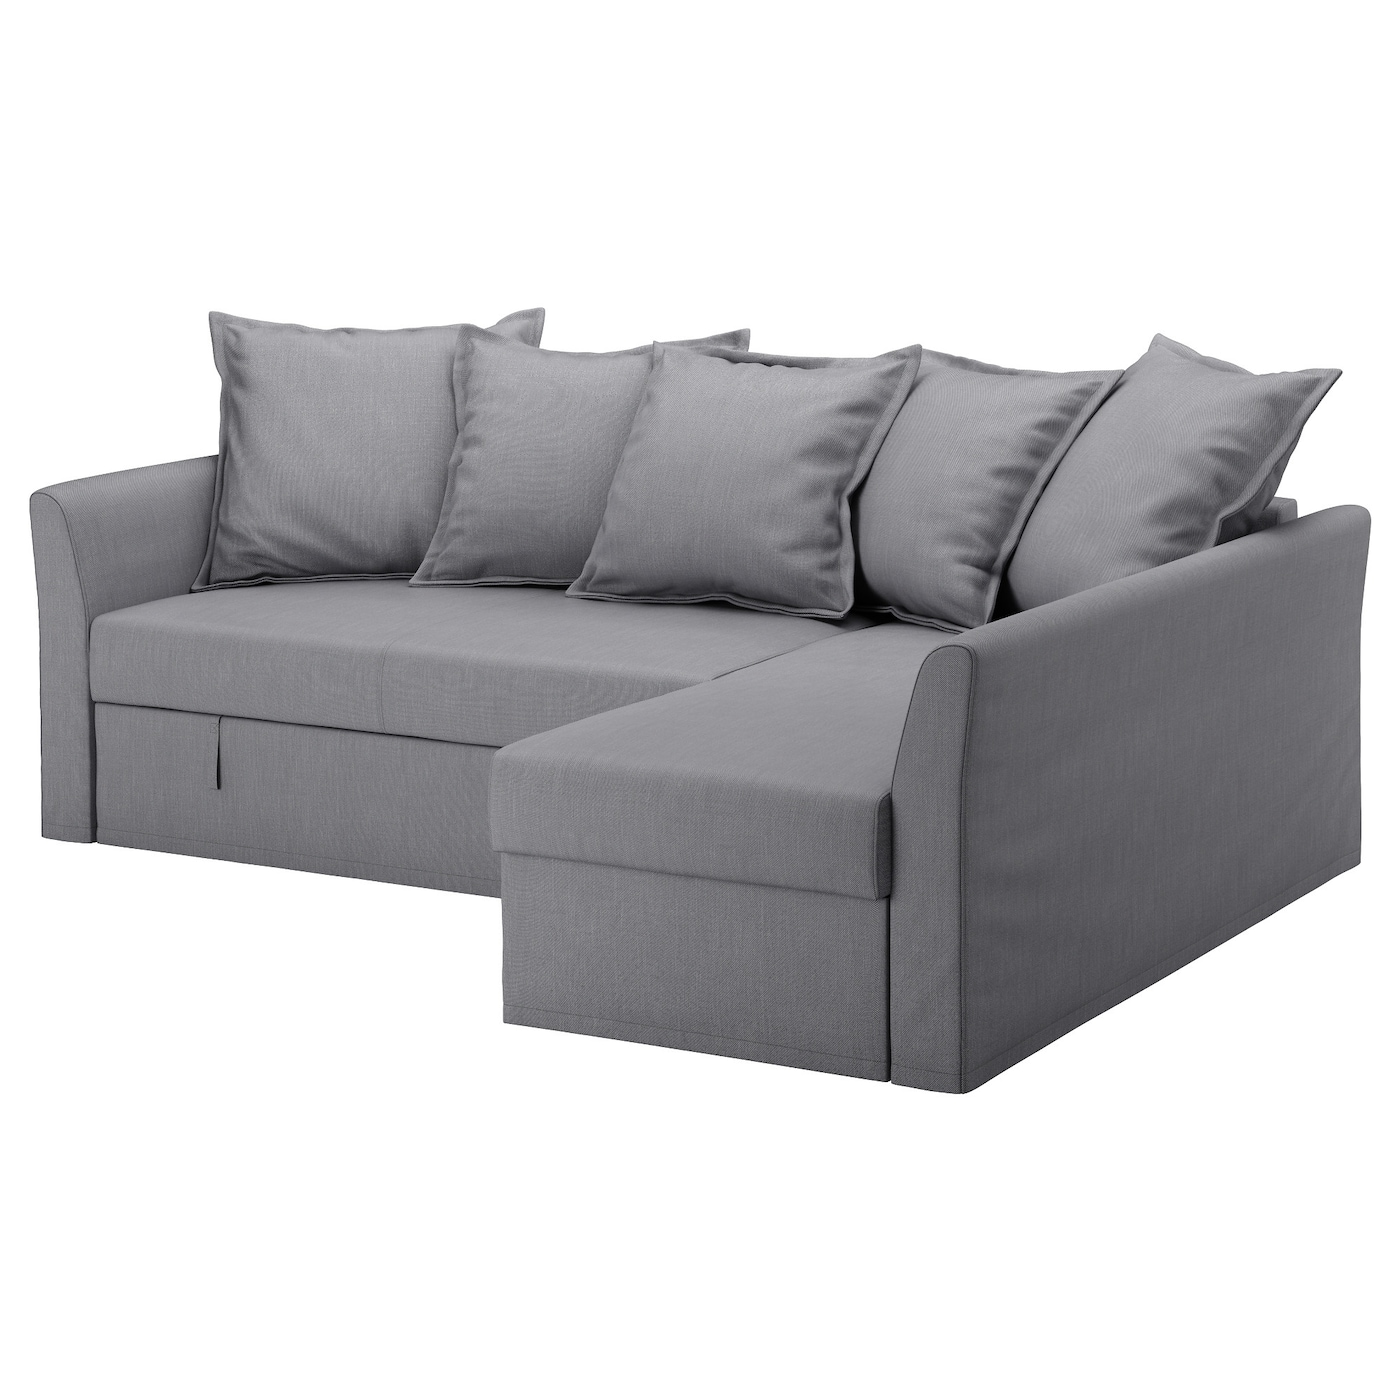 Ikea HOLMSUND Corner sofa-bed, Nordvalla medium gray